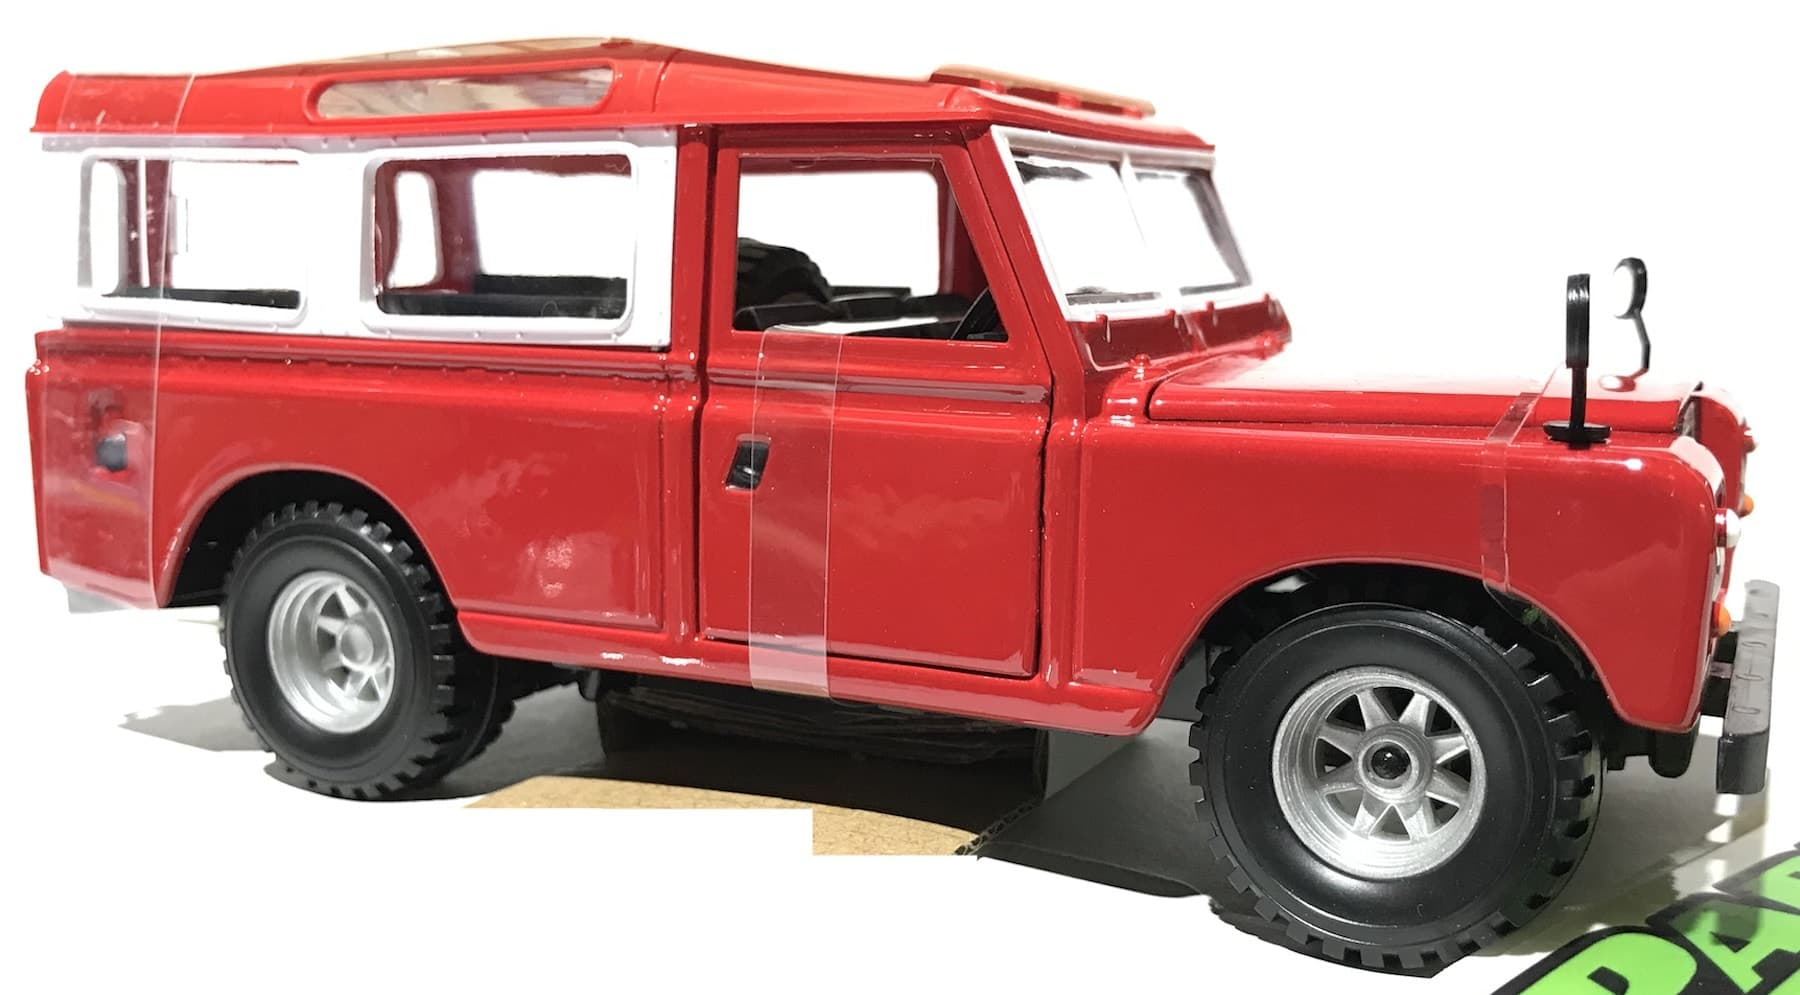 Land Rover MK2 Series II 1:24 Scale Model Car Christmas Gift Xmas Birthday Present